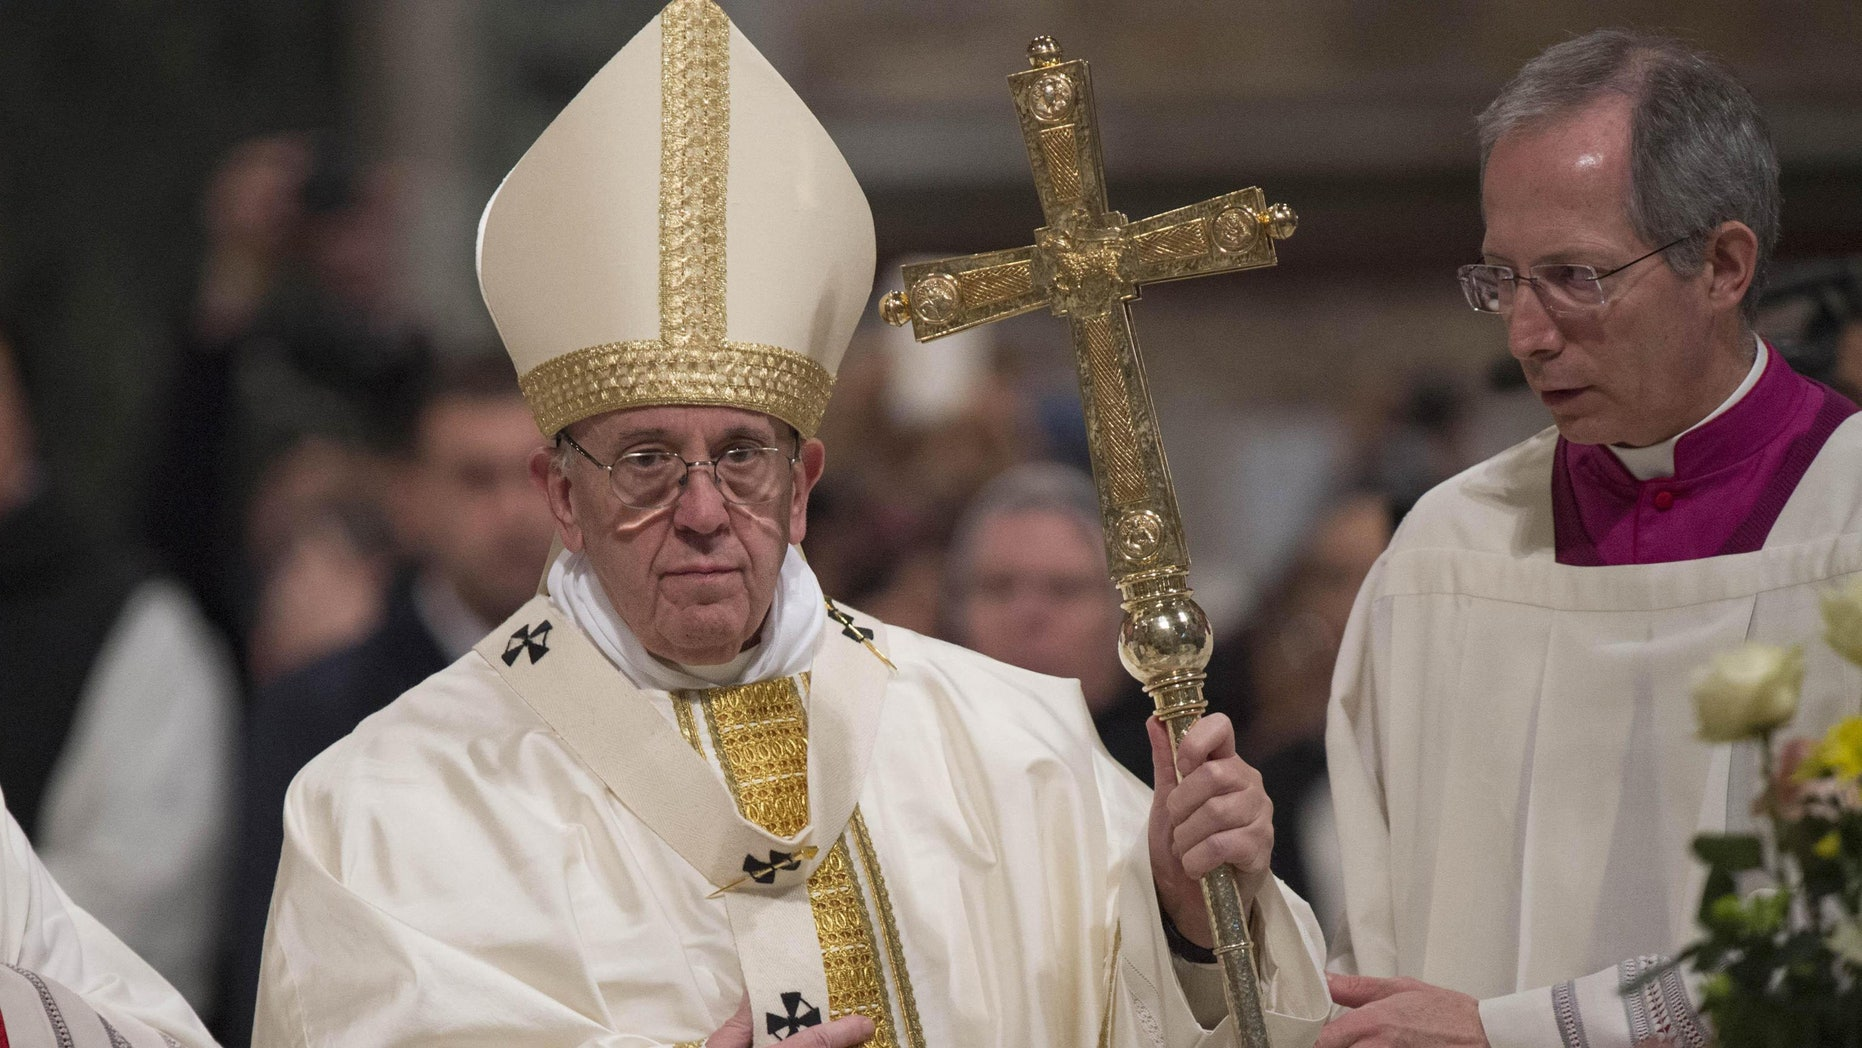 Pope Francis said that the crucifix is a religious sign to be 'contemplated and understood', rather than merchandised.